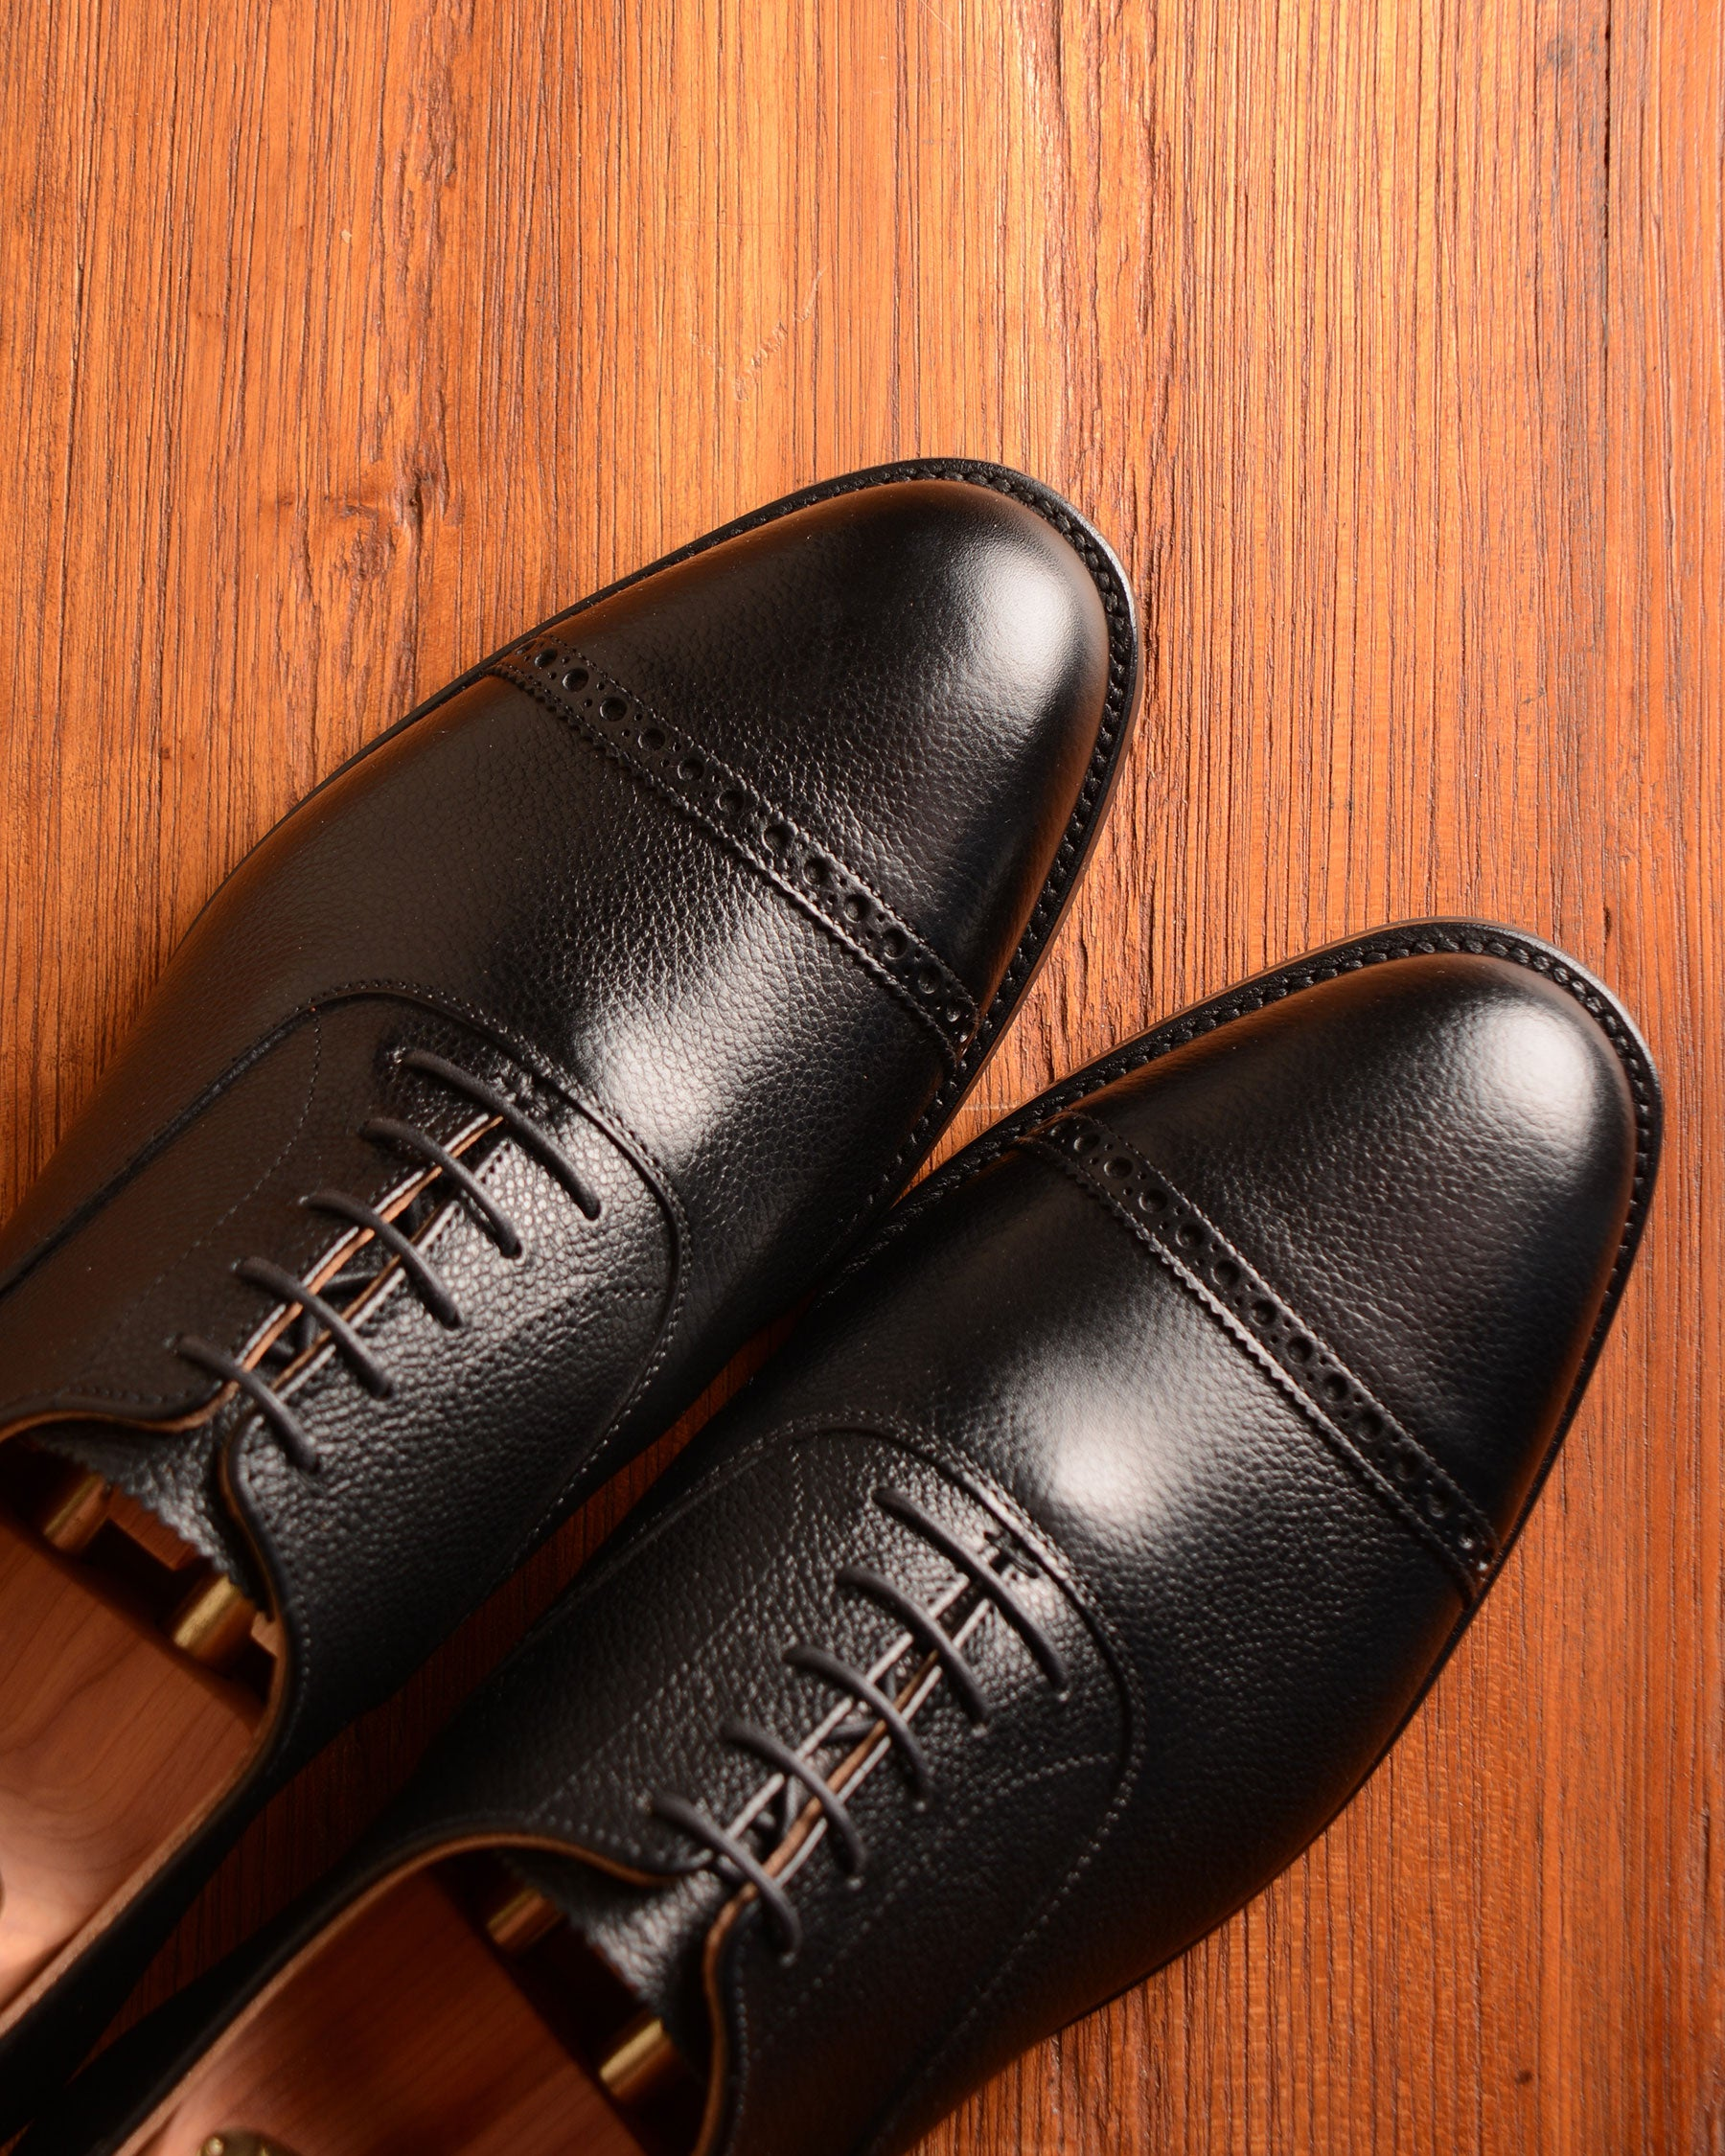 Crockett & Jones Arden - Black Pebble Grain